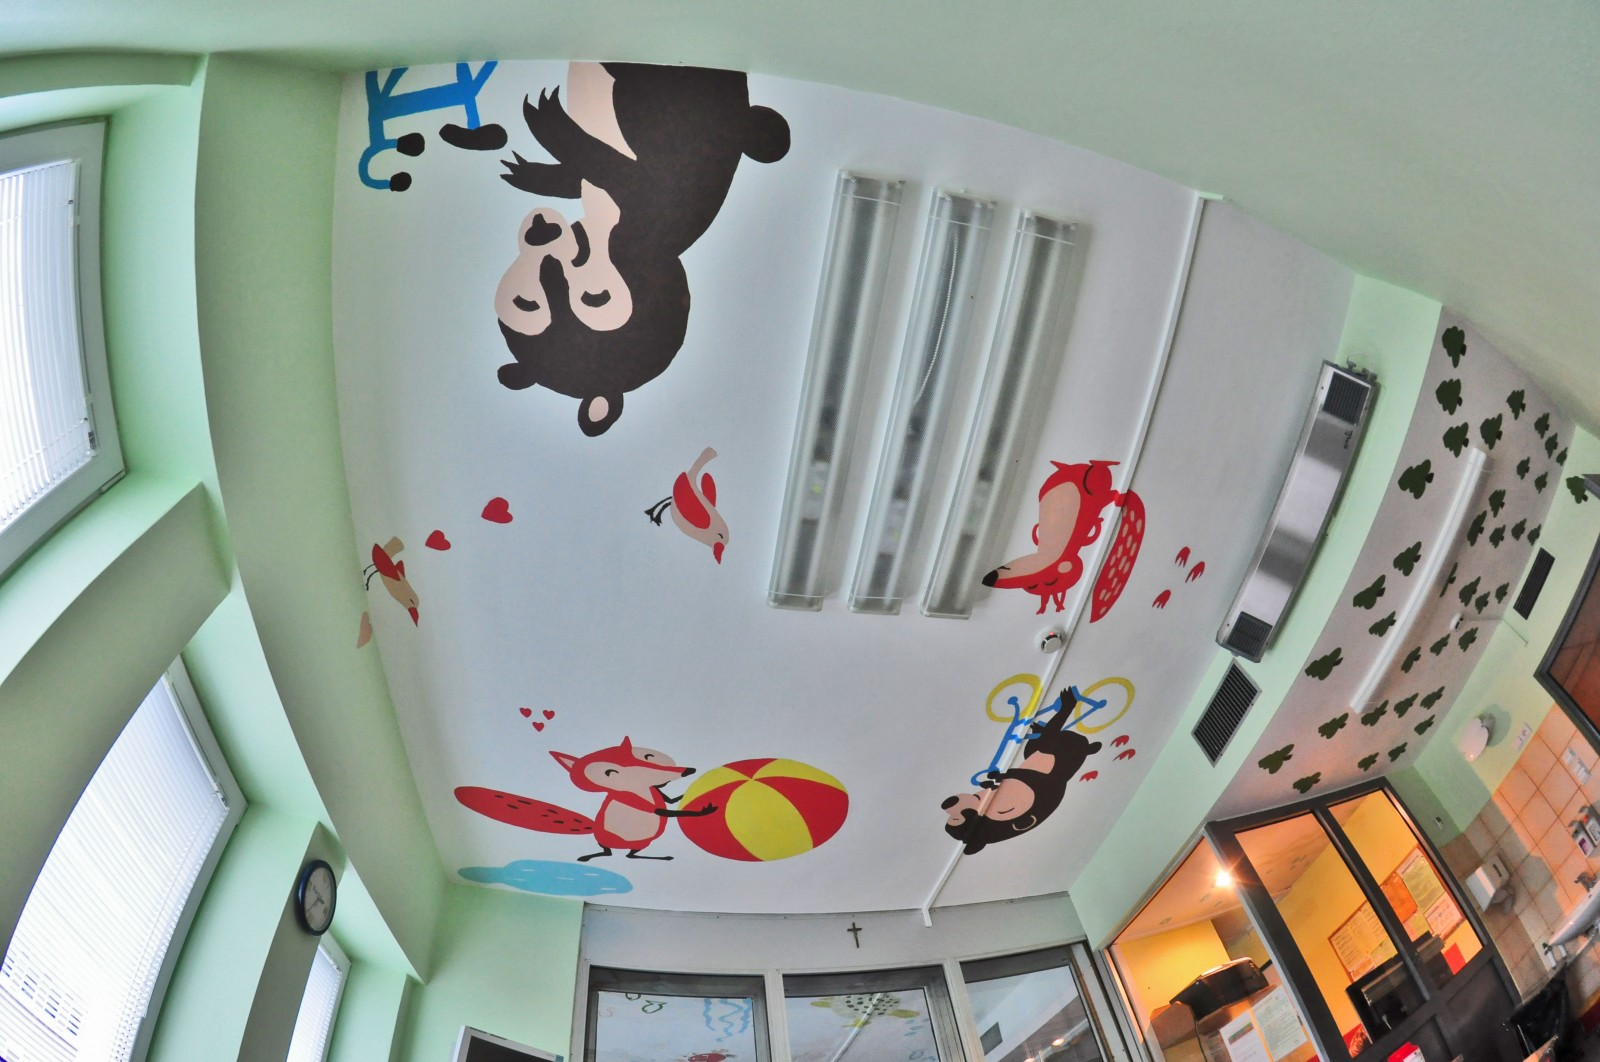 Painting in postoperative rooms Ceiling Operation - The Children's Memorial Health Institute | Ceiling Operation - The Children's Memorial Health Institute | CSR | About us